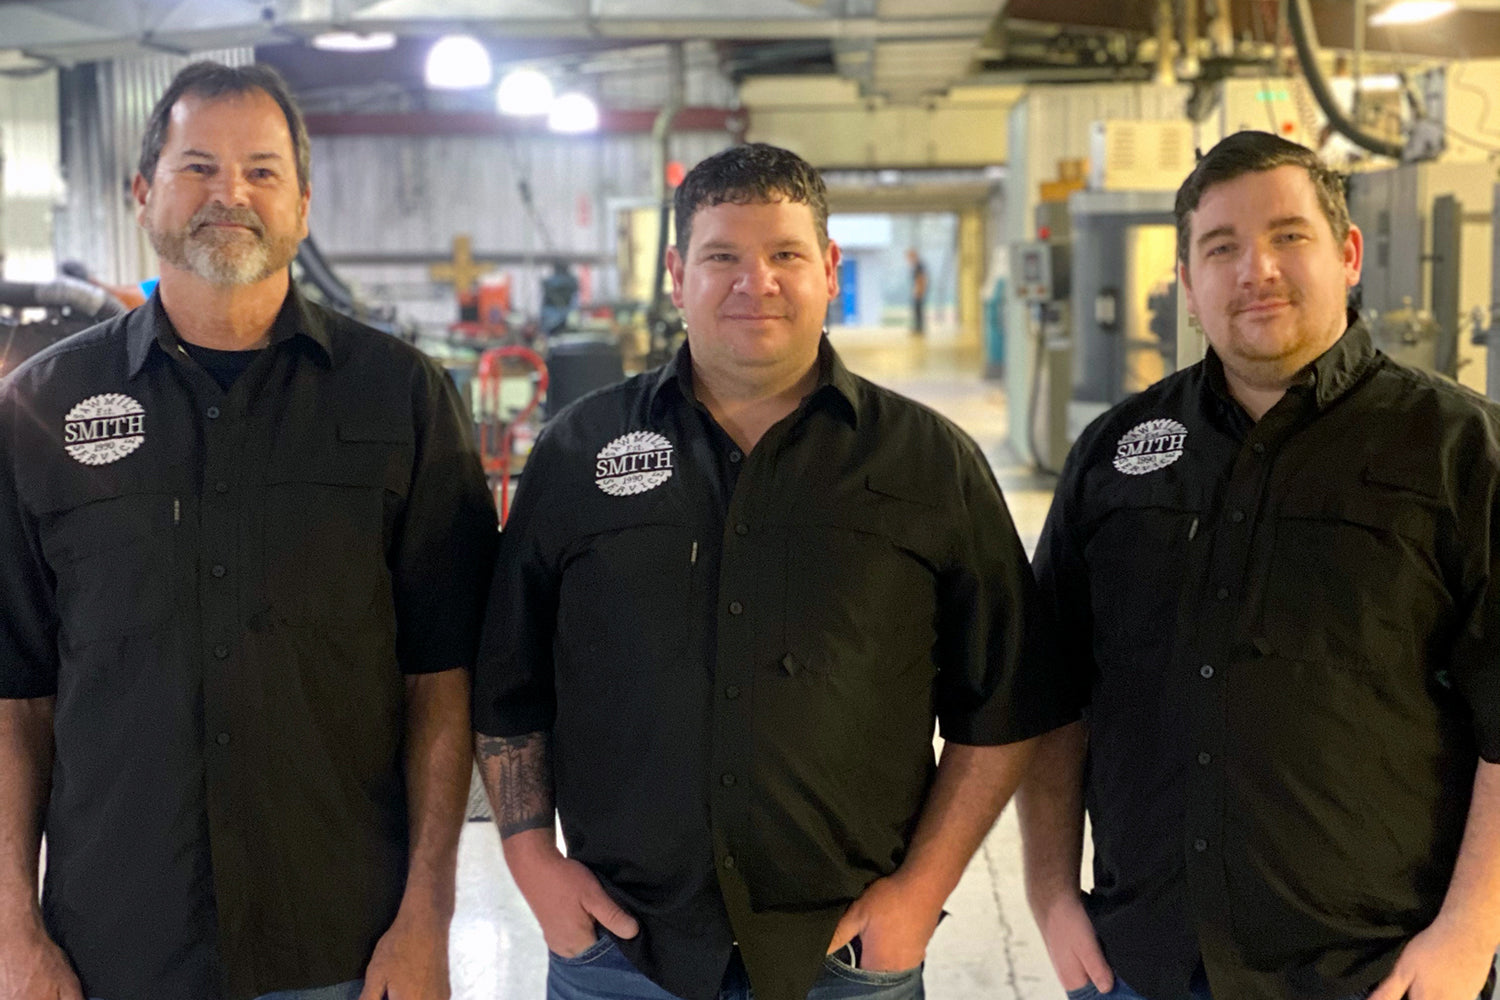 Smith Sawmill Service expands to North Carolina, Frank Curran, Michael Smith, Dustin Norris